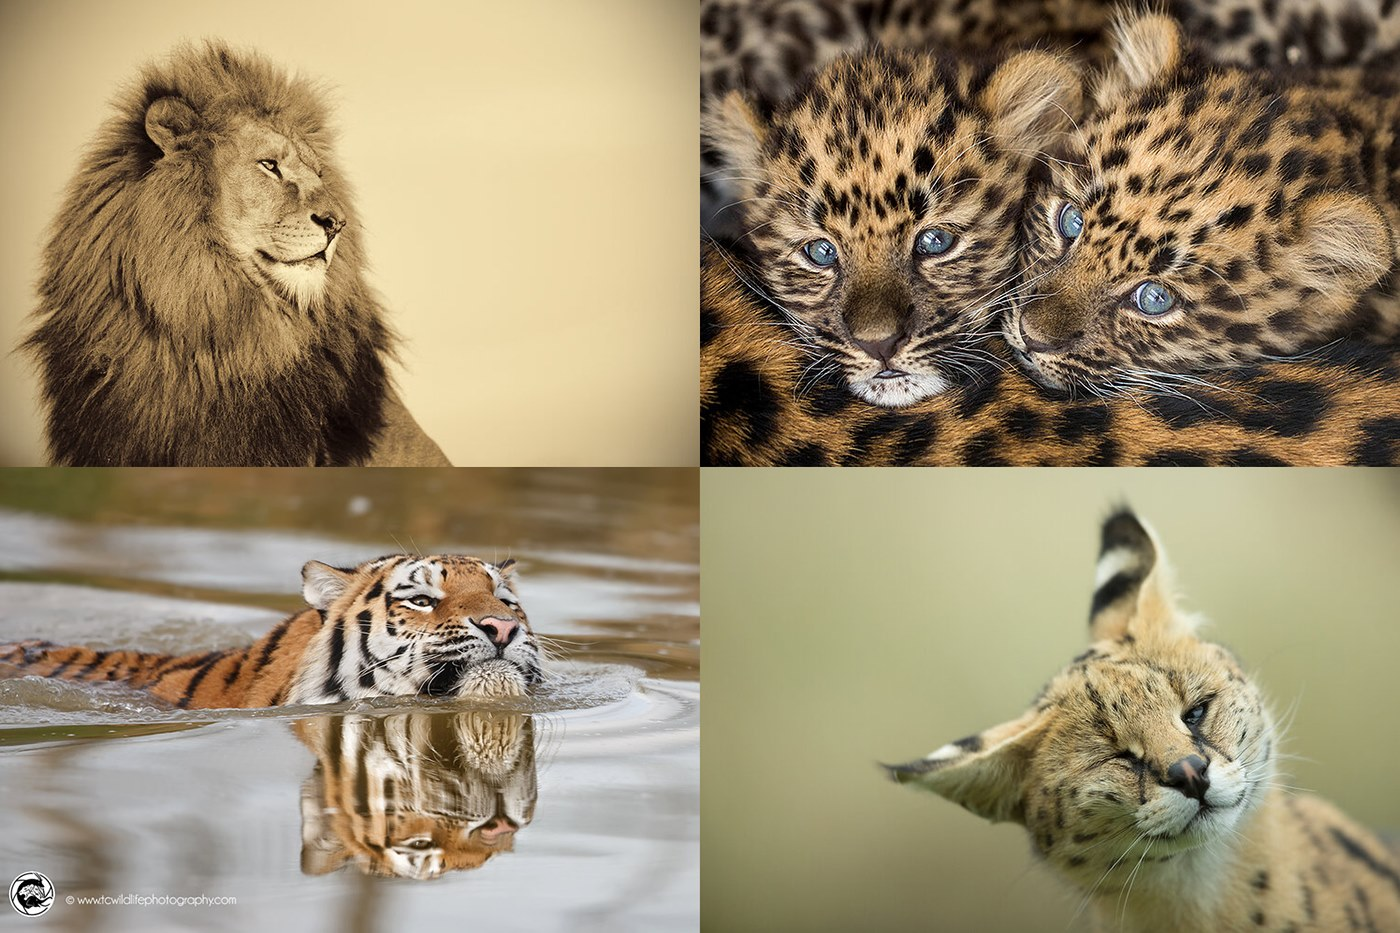 The Art of Zoo Photography